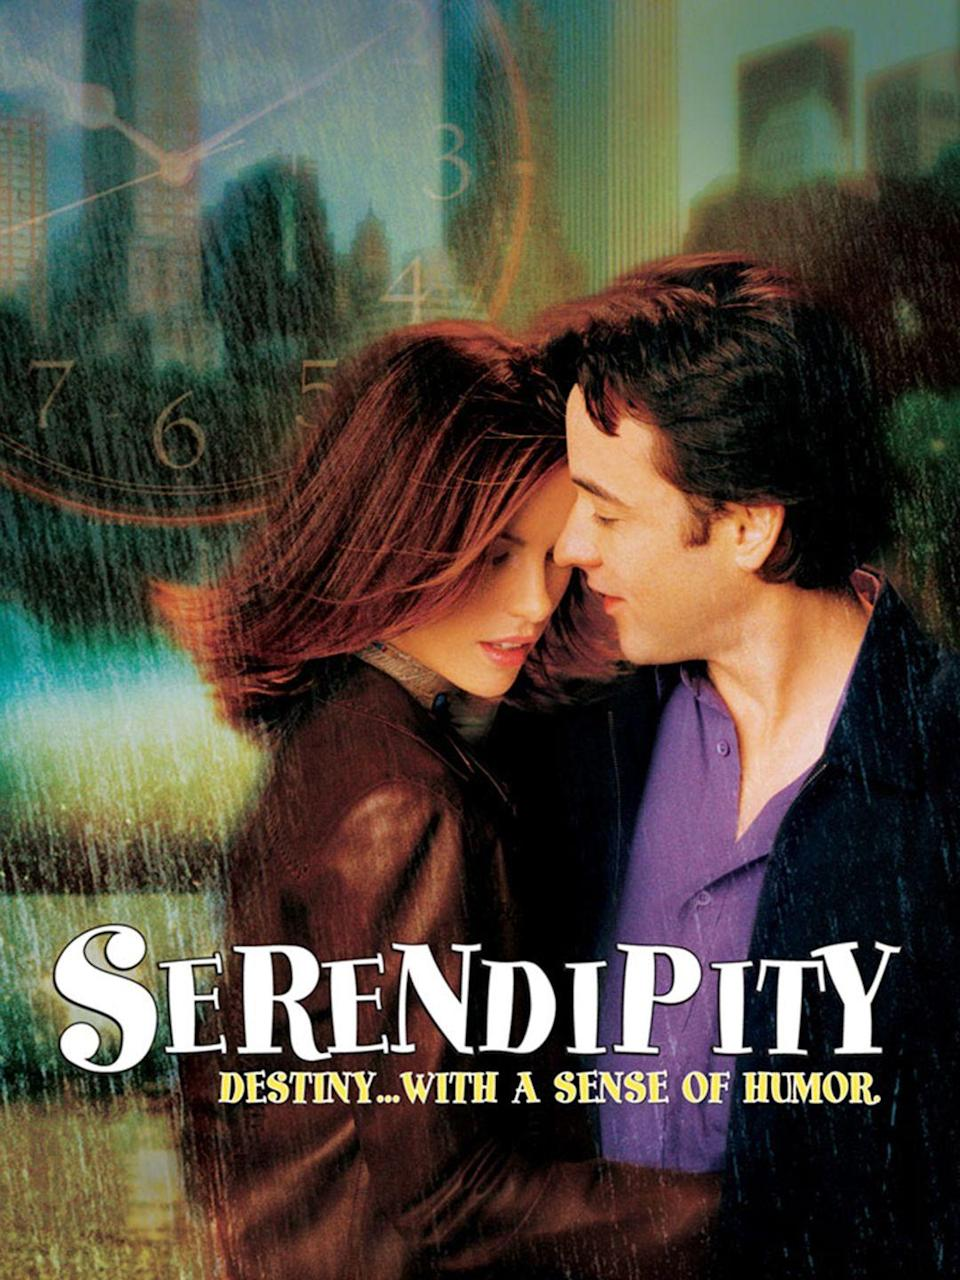 """<p>A cynic and a romantic are brought together for one magical evening, and decide to leave it up to fate as to whether or not they'll meet again. </p><p><a class=""""link rapid-noclick-resp"""" href=""""https://www.amazon.com/Serendipity-John-Cusack/dp/B00CAKCS9O/?tag=syn-yahoo-20&ascsubtag=%5Bartid%7C10050.g.25336174%5Bsrc%7Cyahoo-us"""" rel=""""nofollow noopener"""" target=""""_blank"""" data-ylk=""""slk:WATCH NOW"""">WATCH NOW</a></p>"""